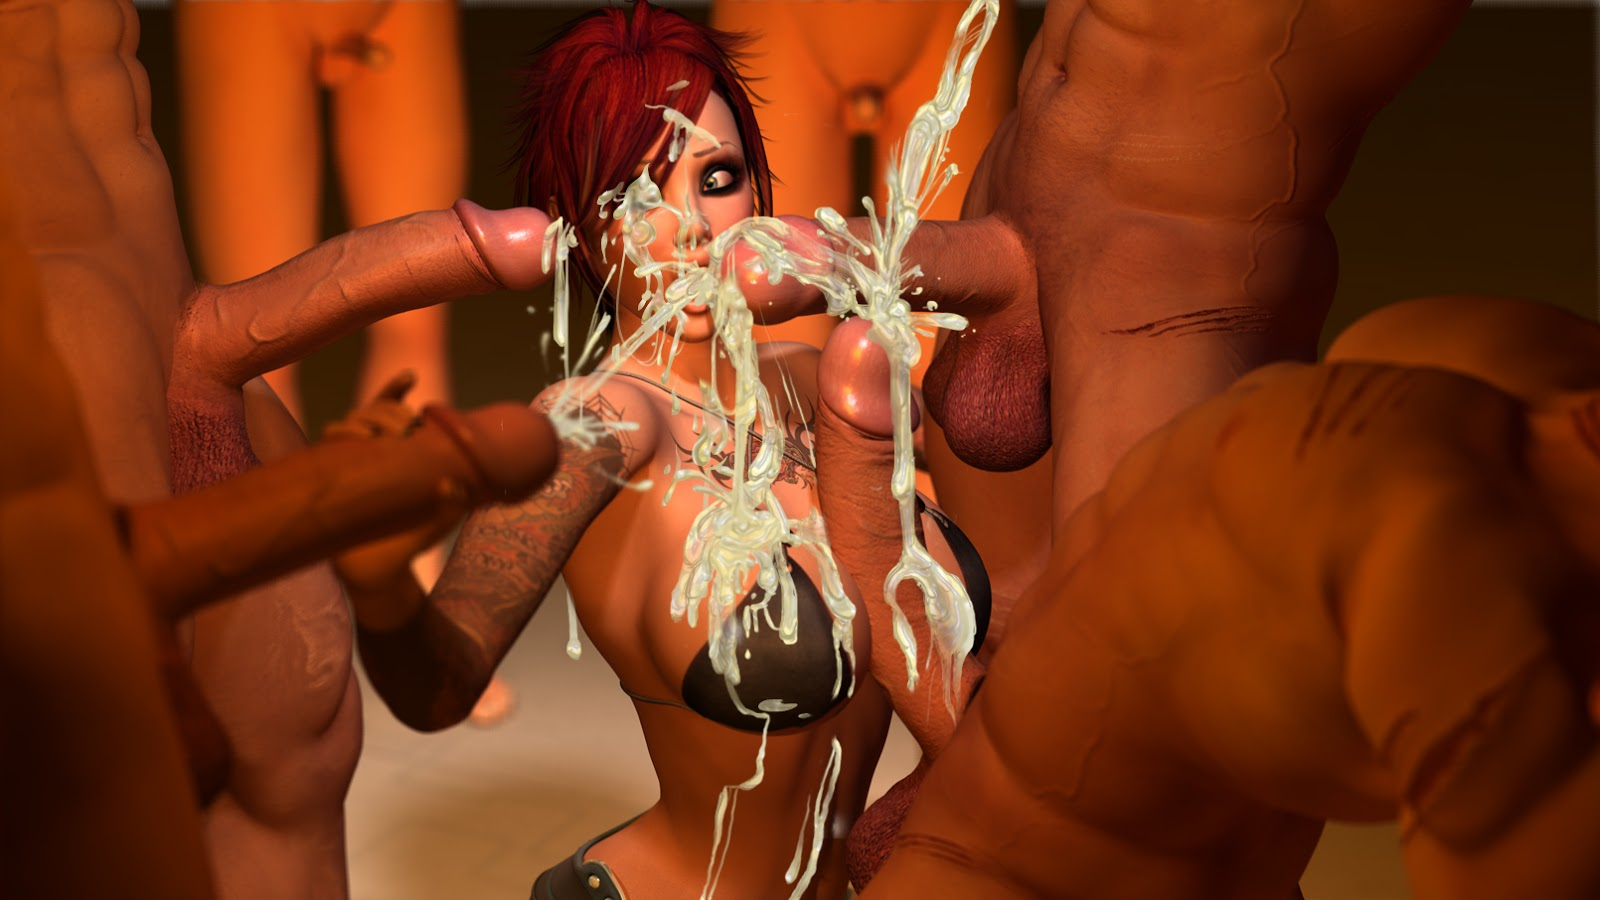 Free downloadable Warcraft 3 sex moves sex photos